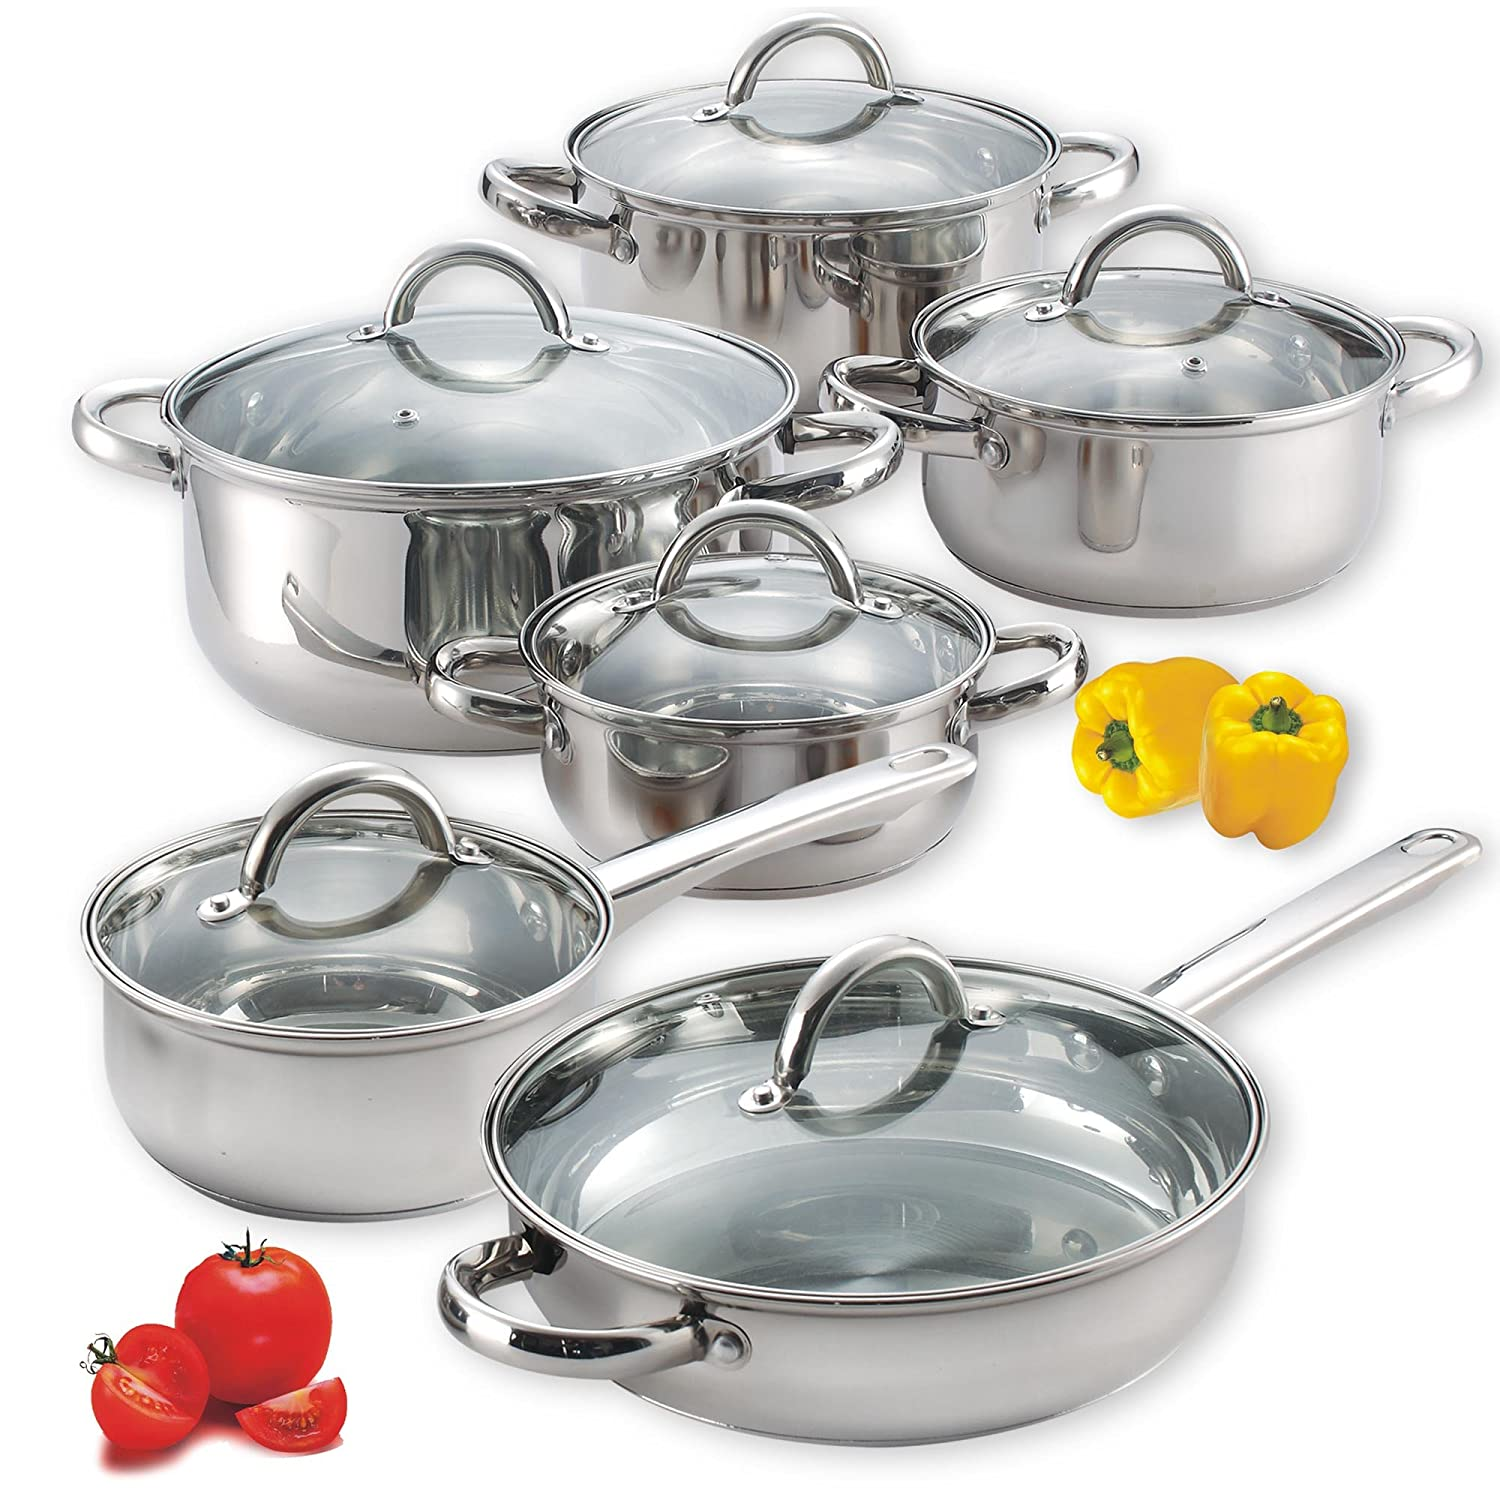 NEW! 6 Piece Pots & Pans Kitchen Home Cooking Set